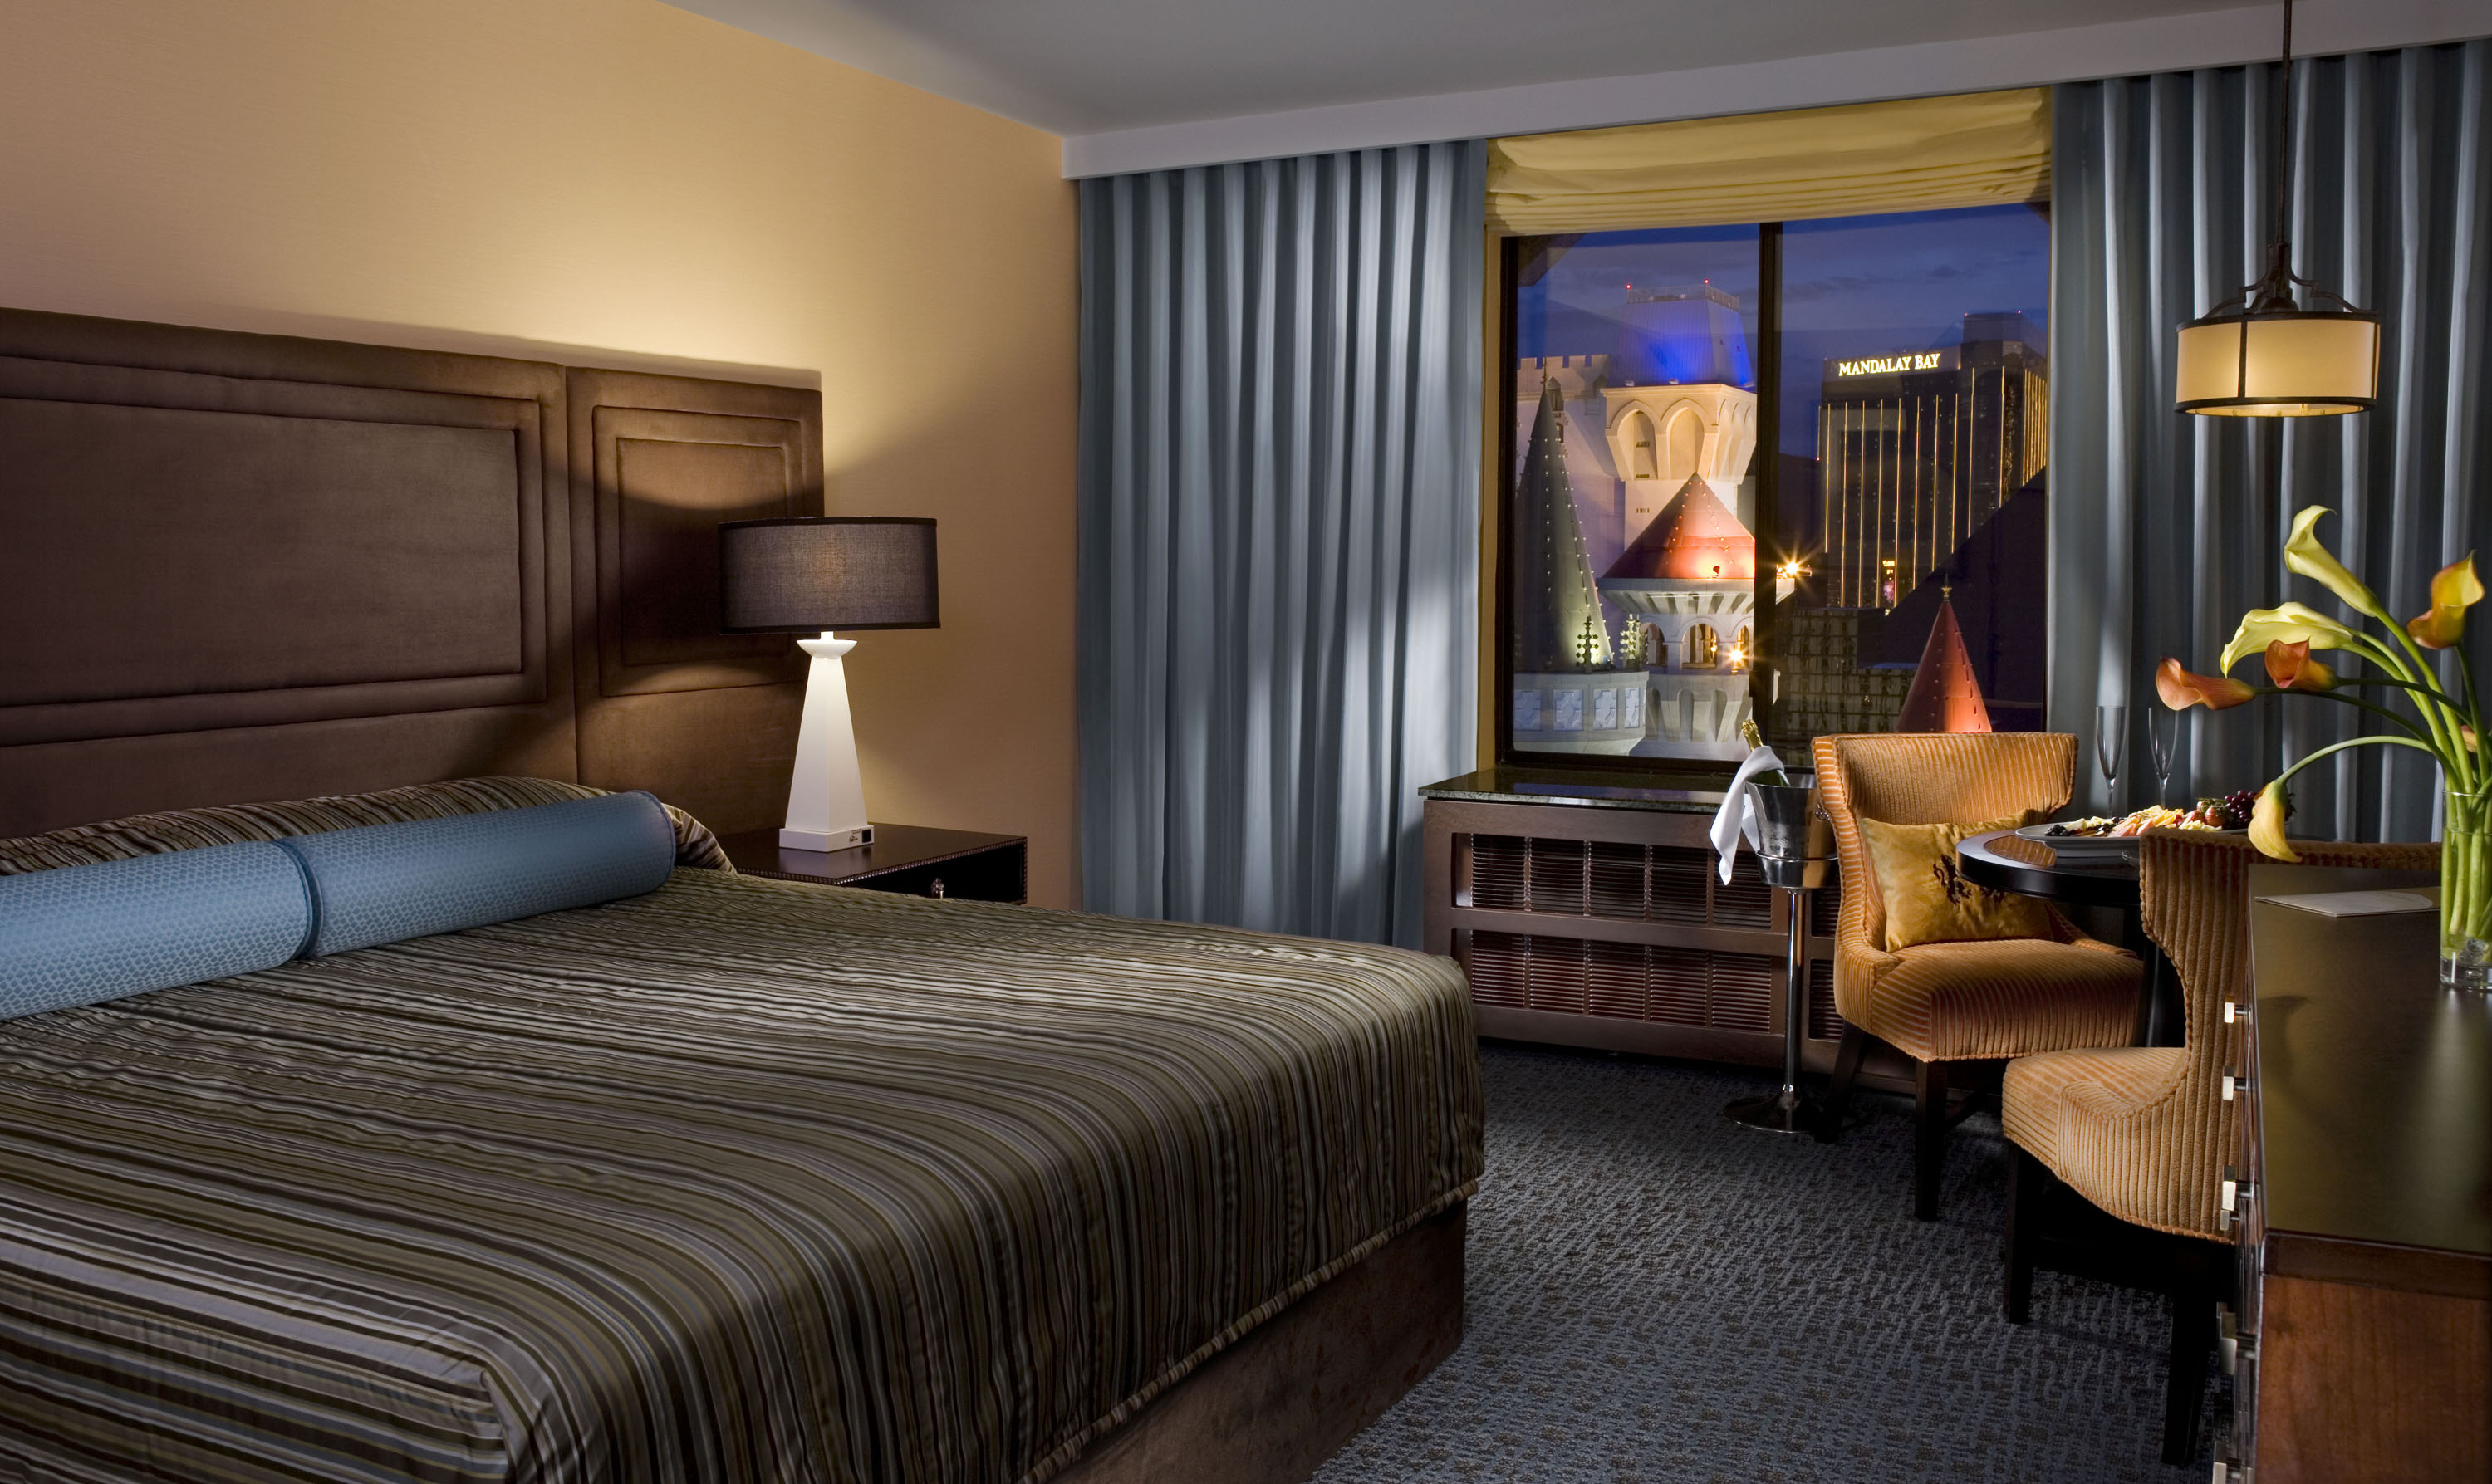 Planet Hollywood Towers 2 Bedroom Suite 2 Bedroom Suites Las Vegas Casino Hrh Allsuite Tower Pool Queen